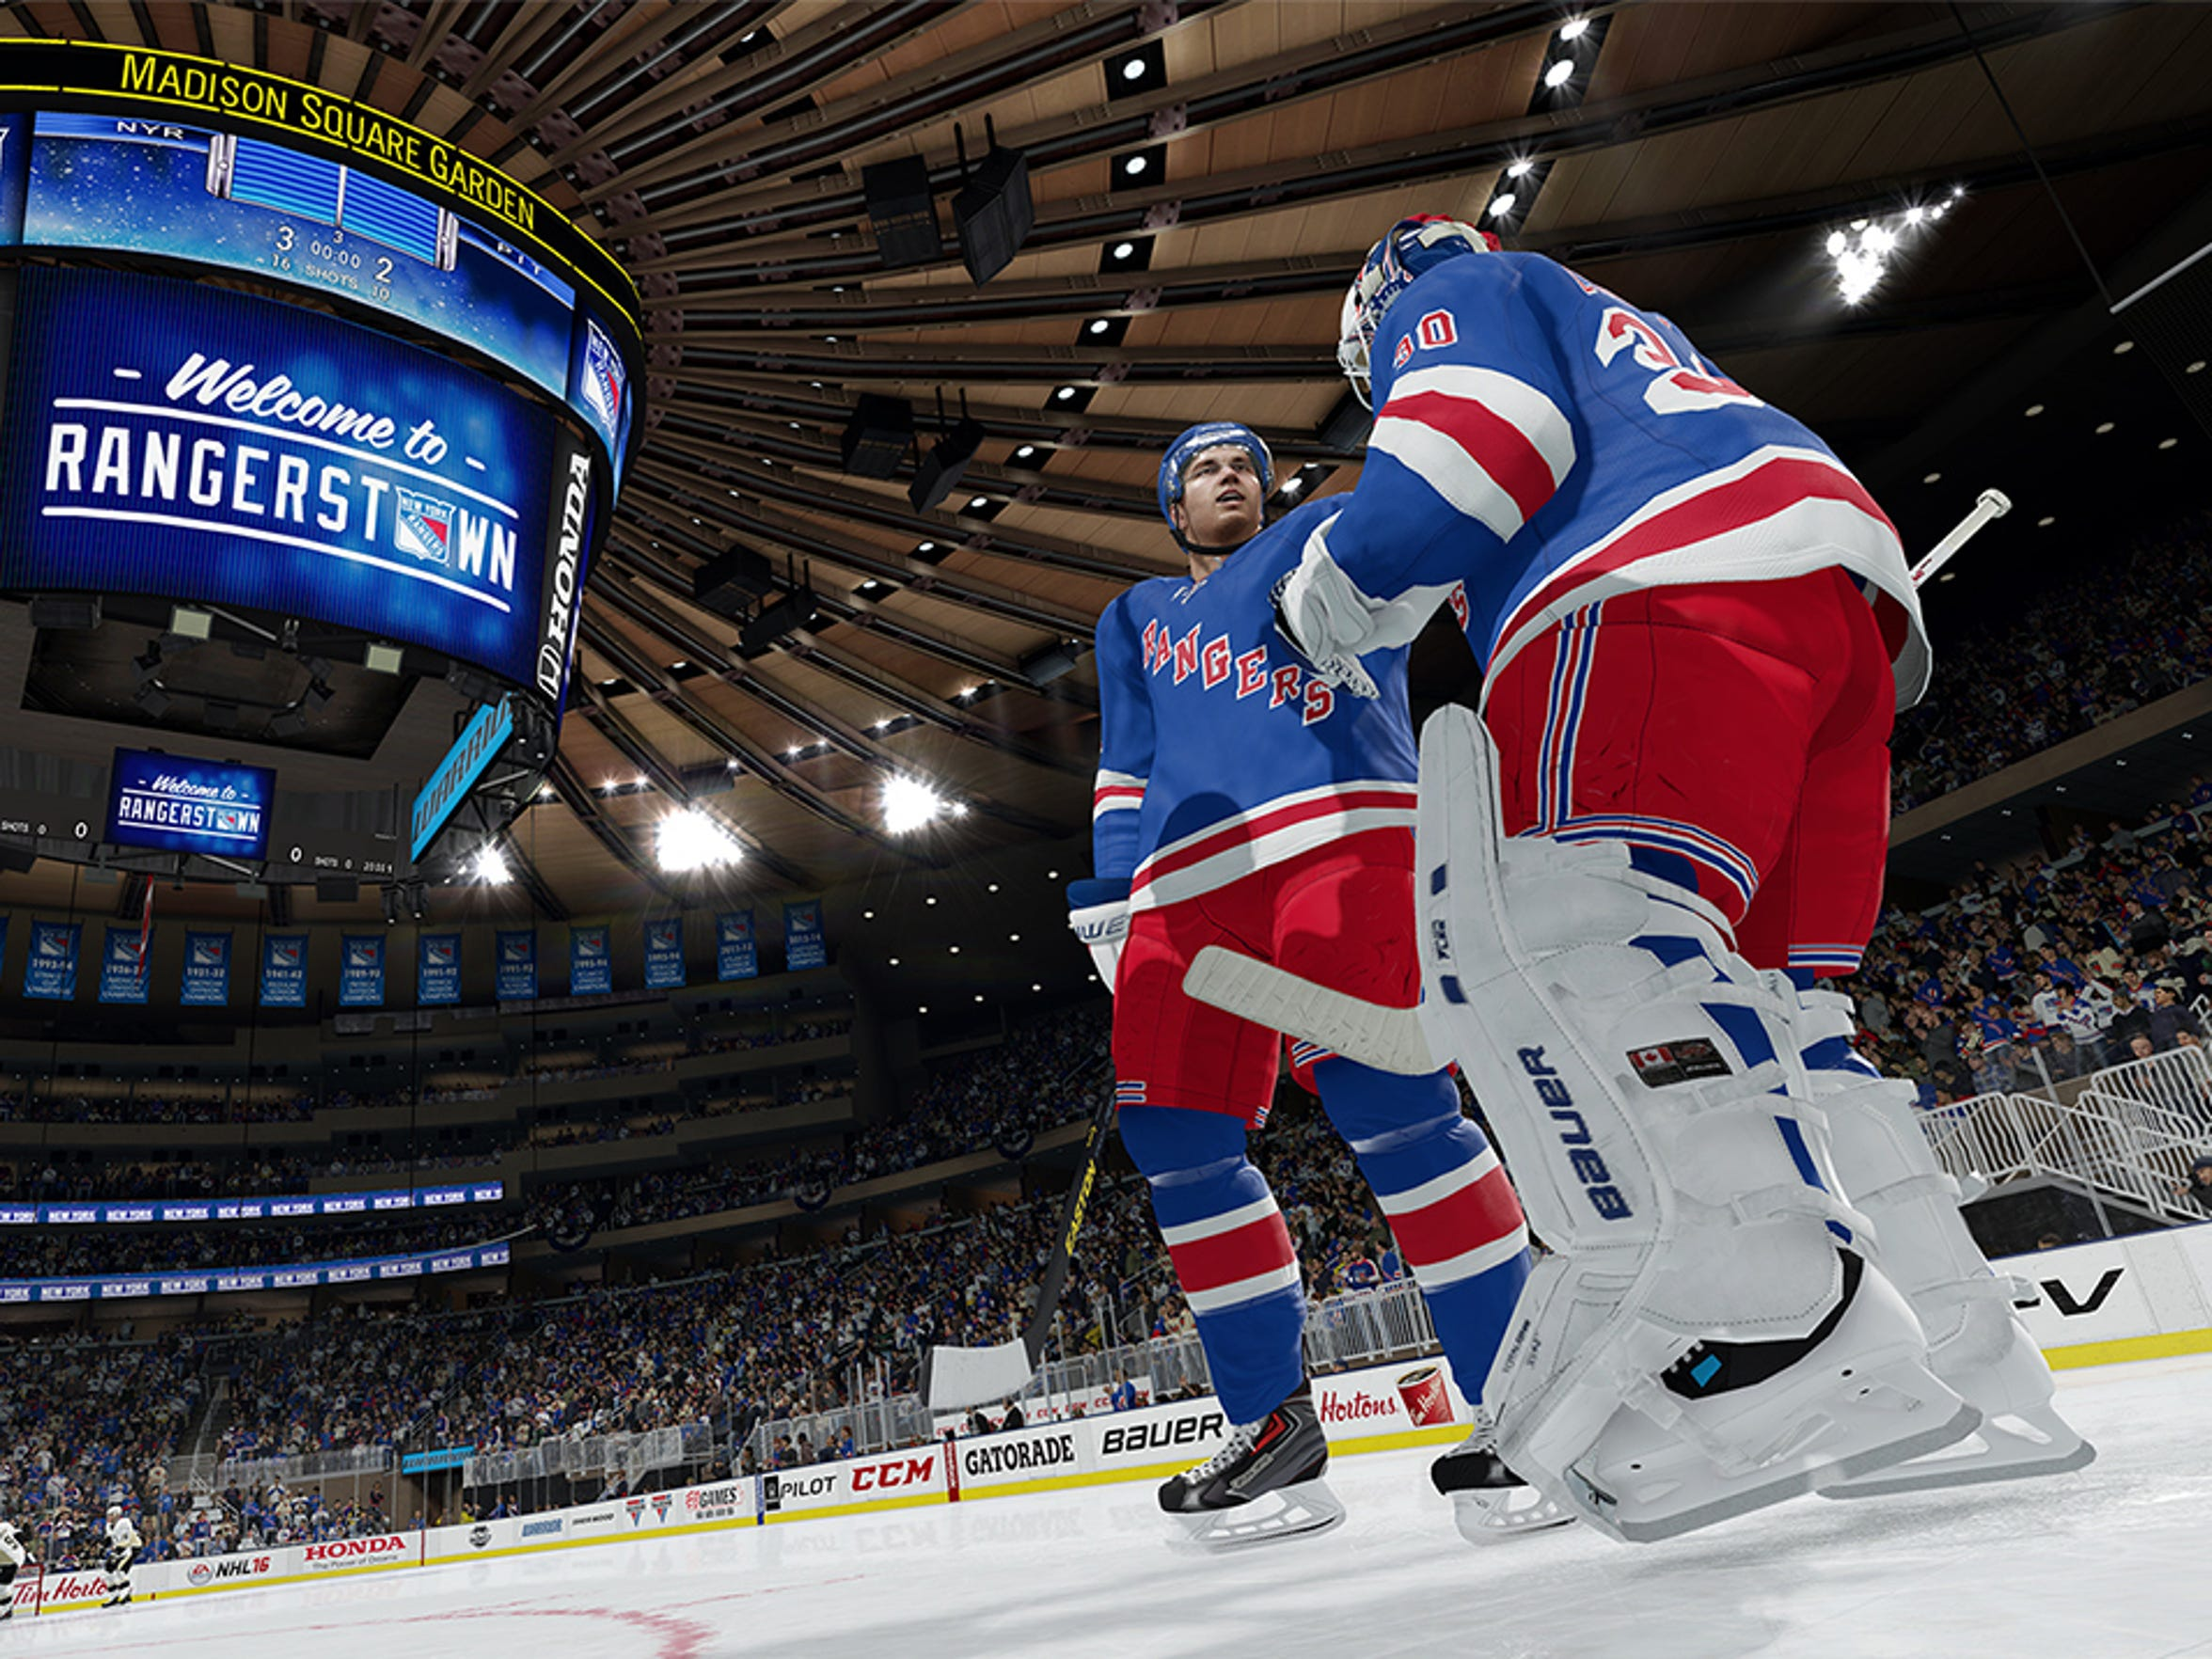 NHL 16 makes a comeback on the ice, adding modes that were missing from last year's game.